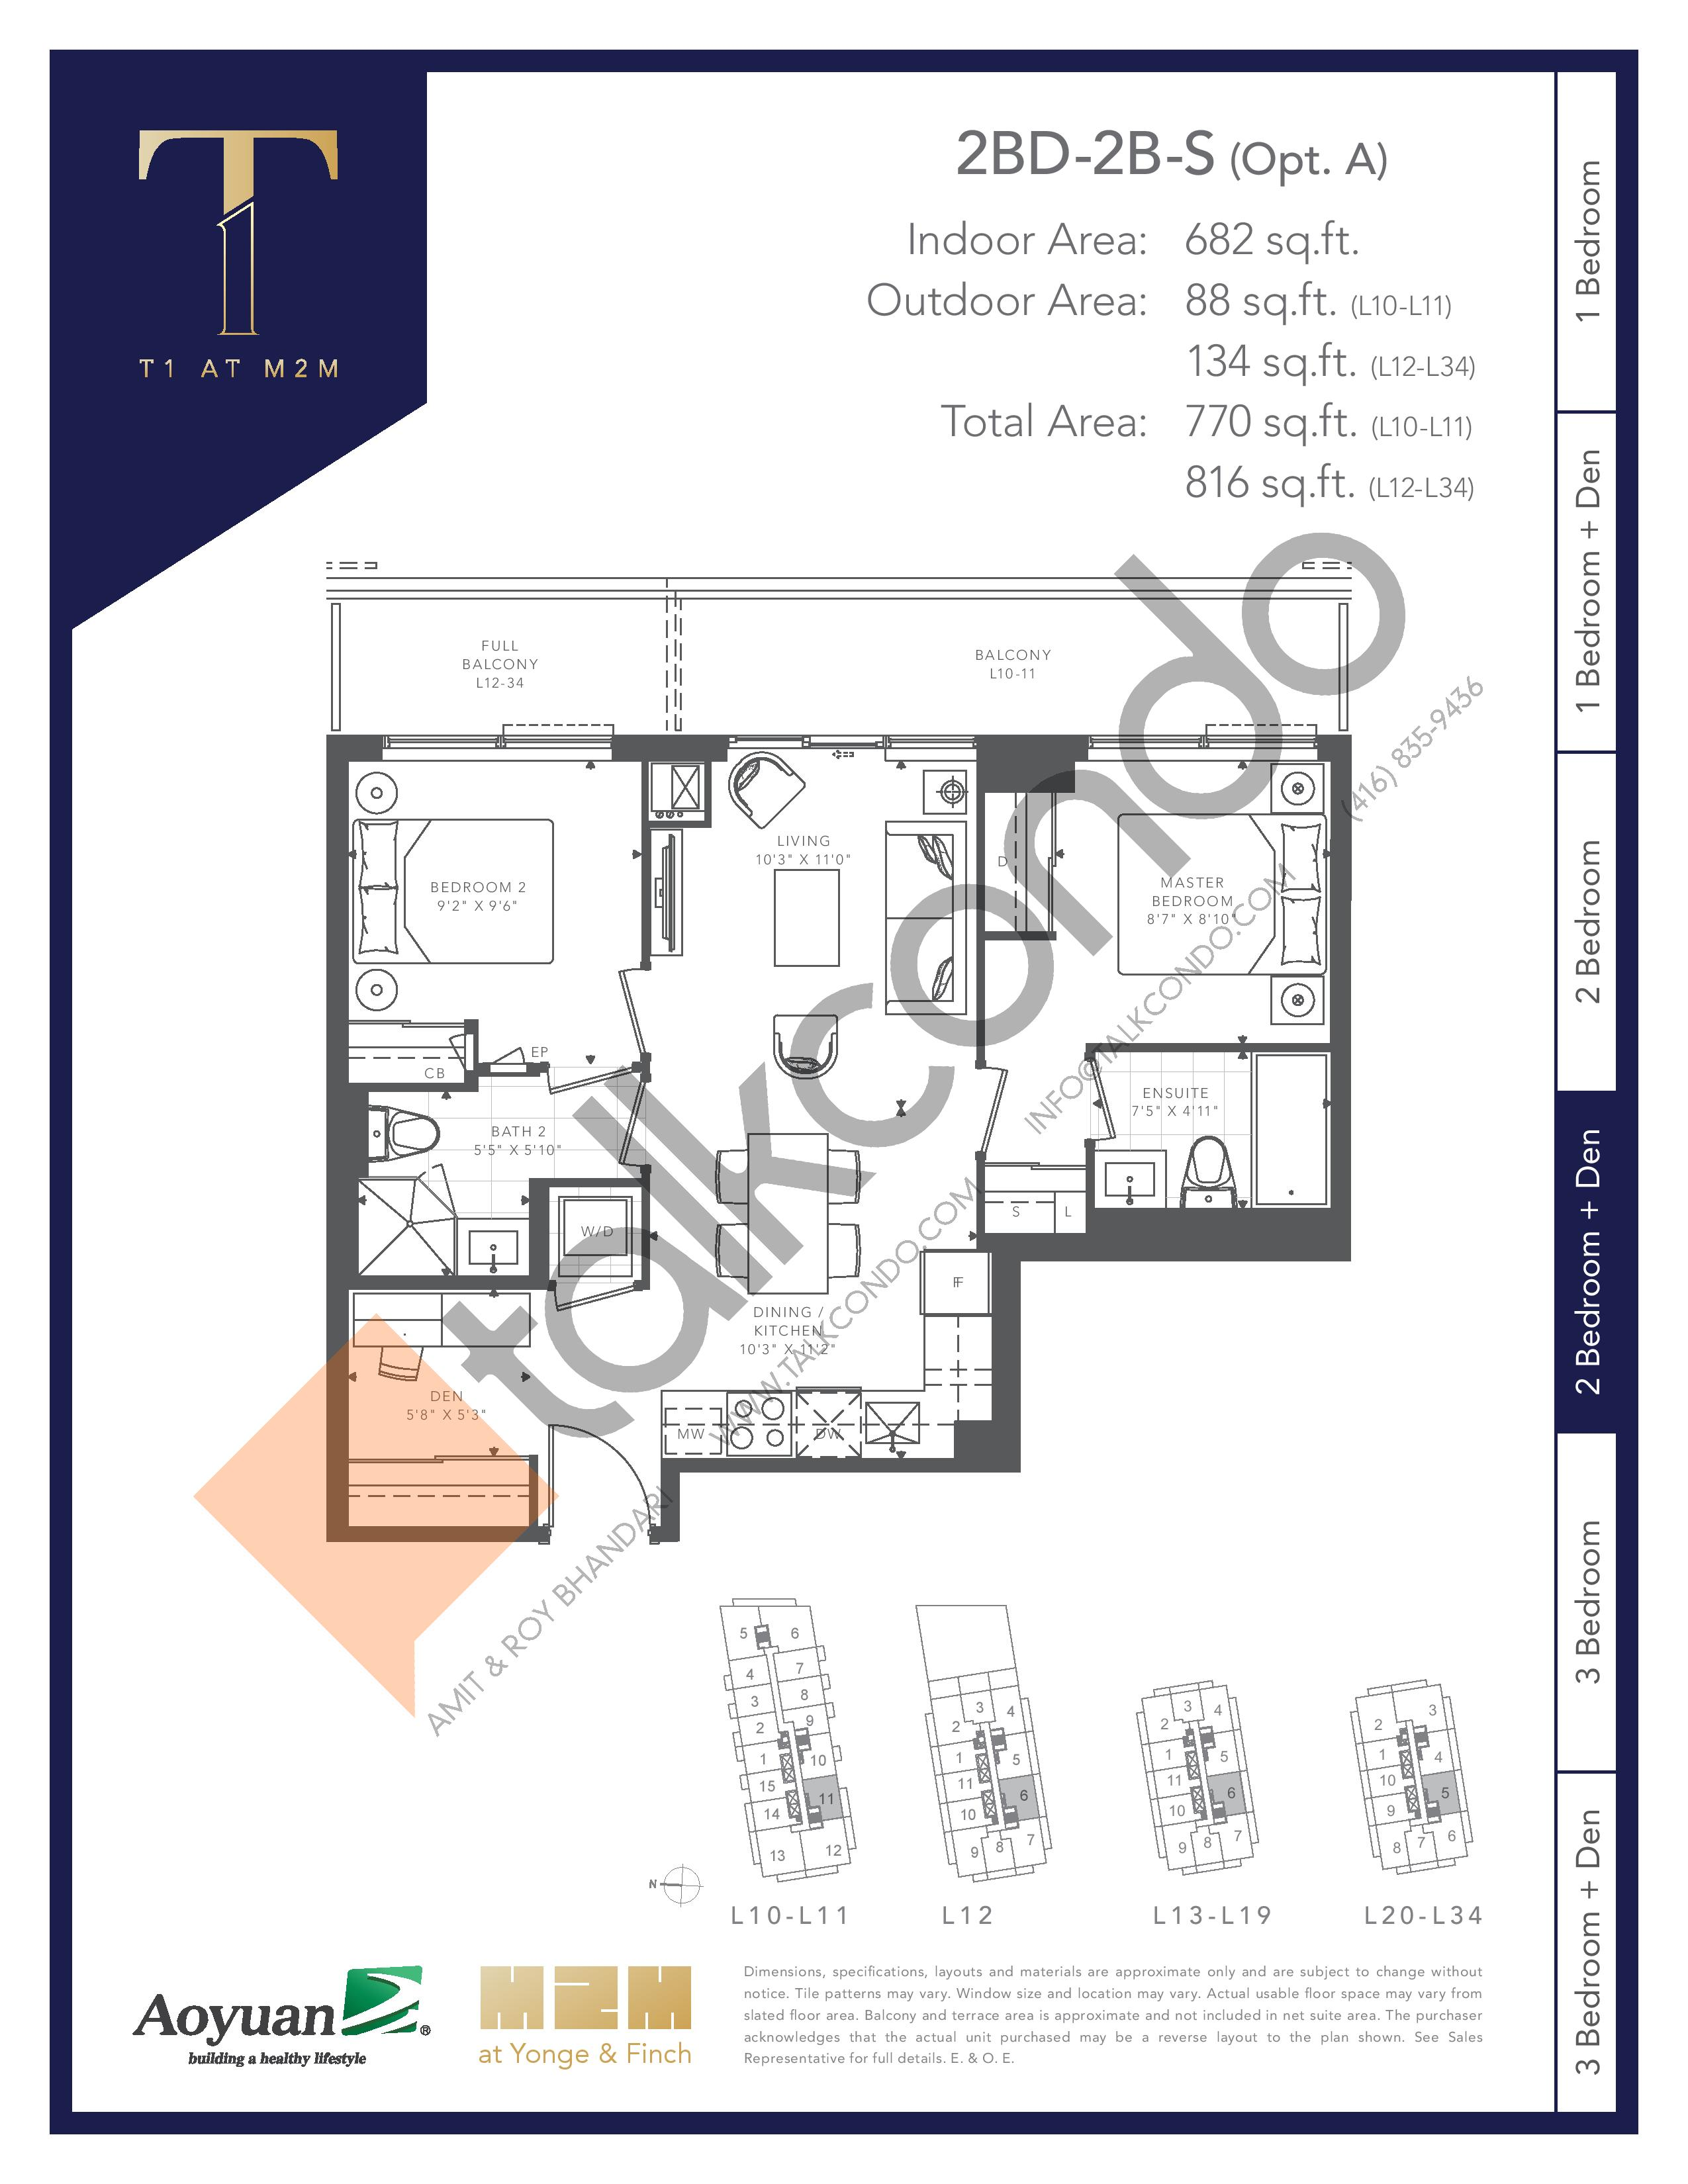 2BD-2B-S (Opt. A) Floor Plan at T1 at M2M Condos - 682 sq.ft